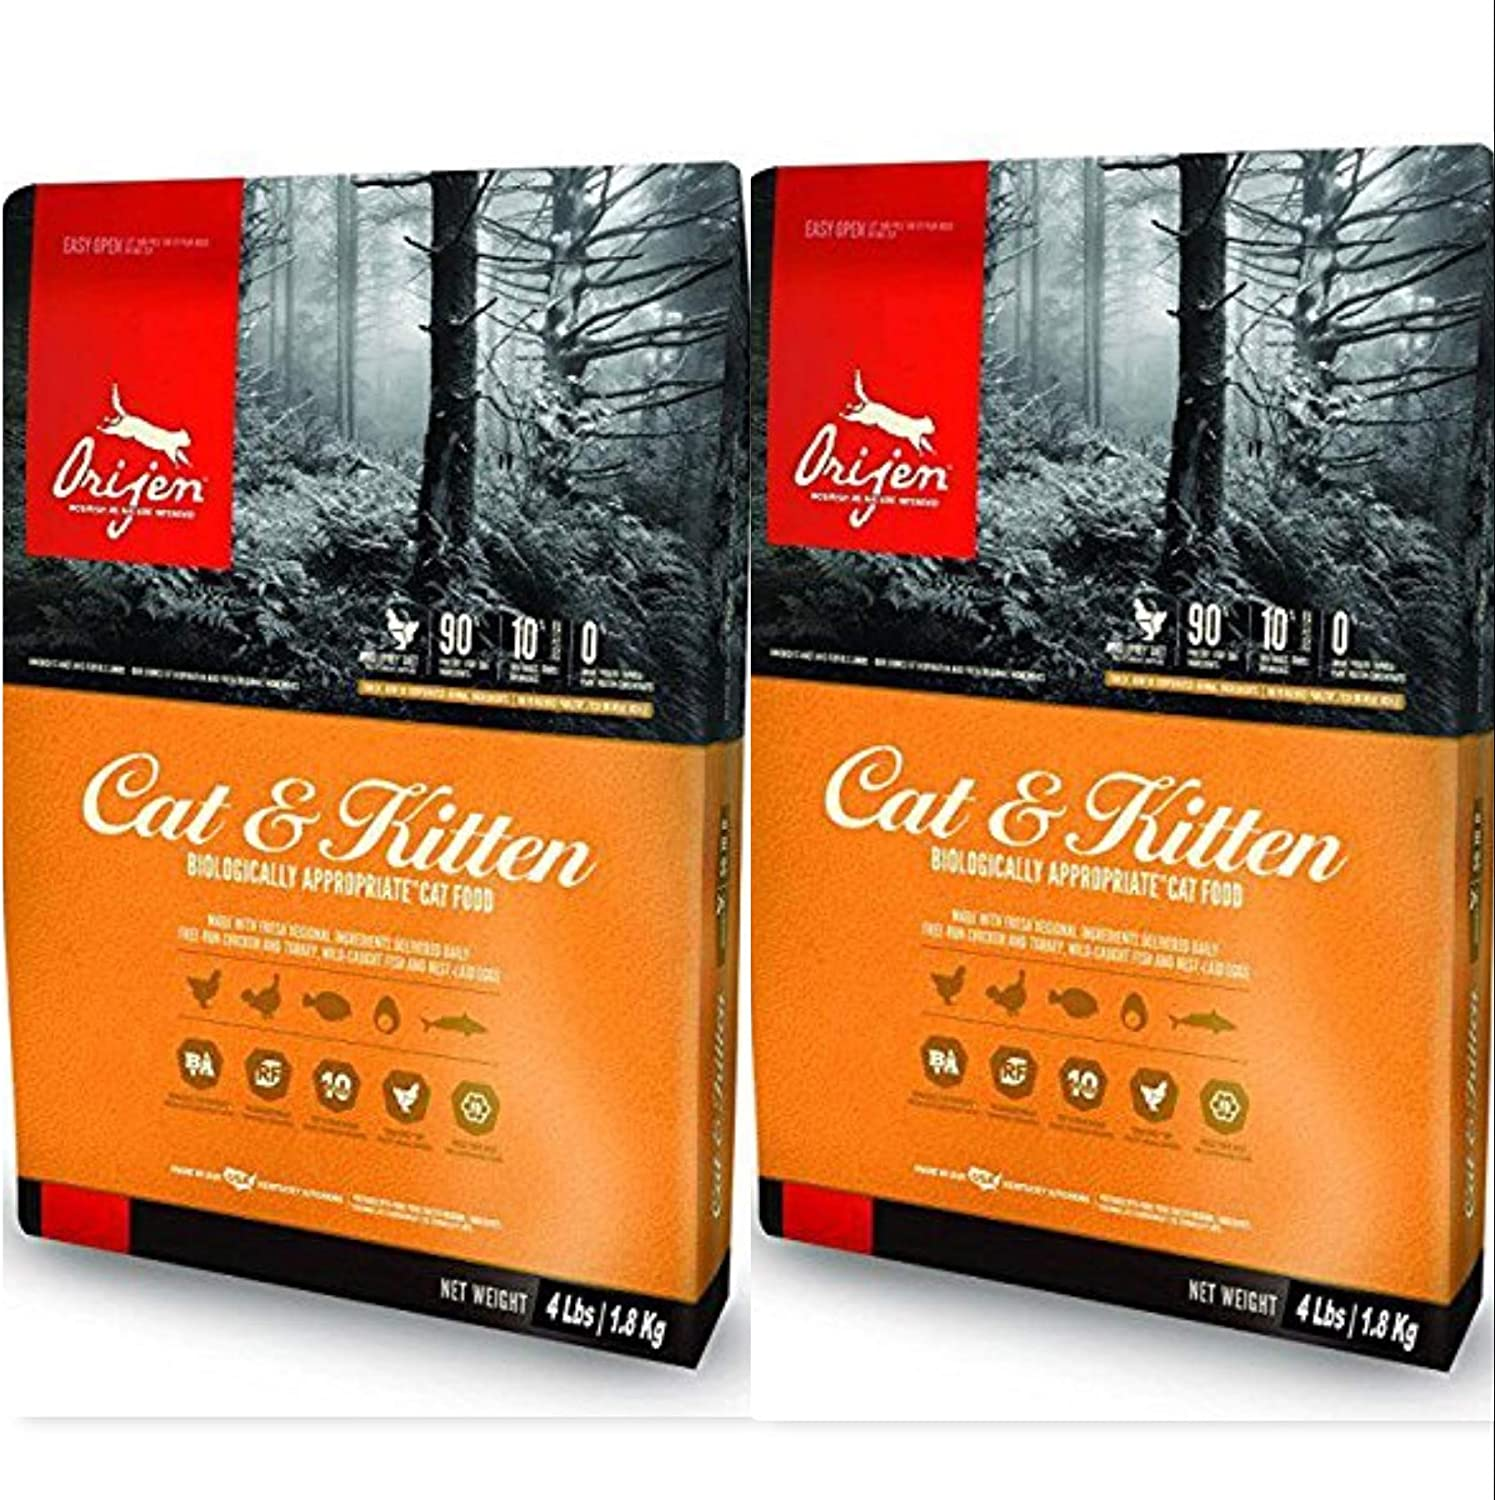 Orijen Dry Cat and Kitten Food 4 Pound Bags. (2 Pack) Biologically Appropriate Cat Food 8 Pounds Total